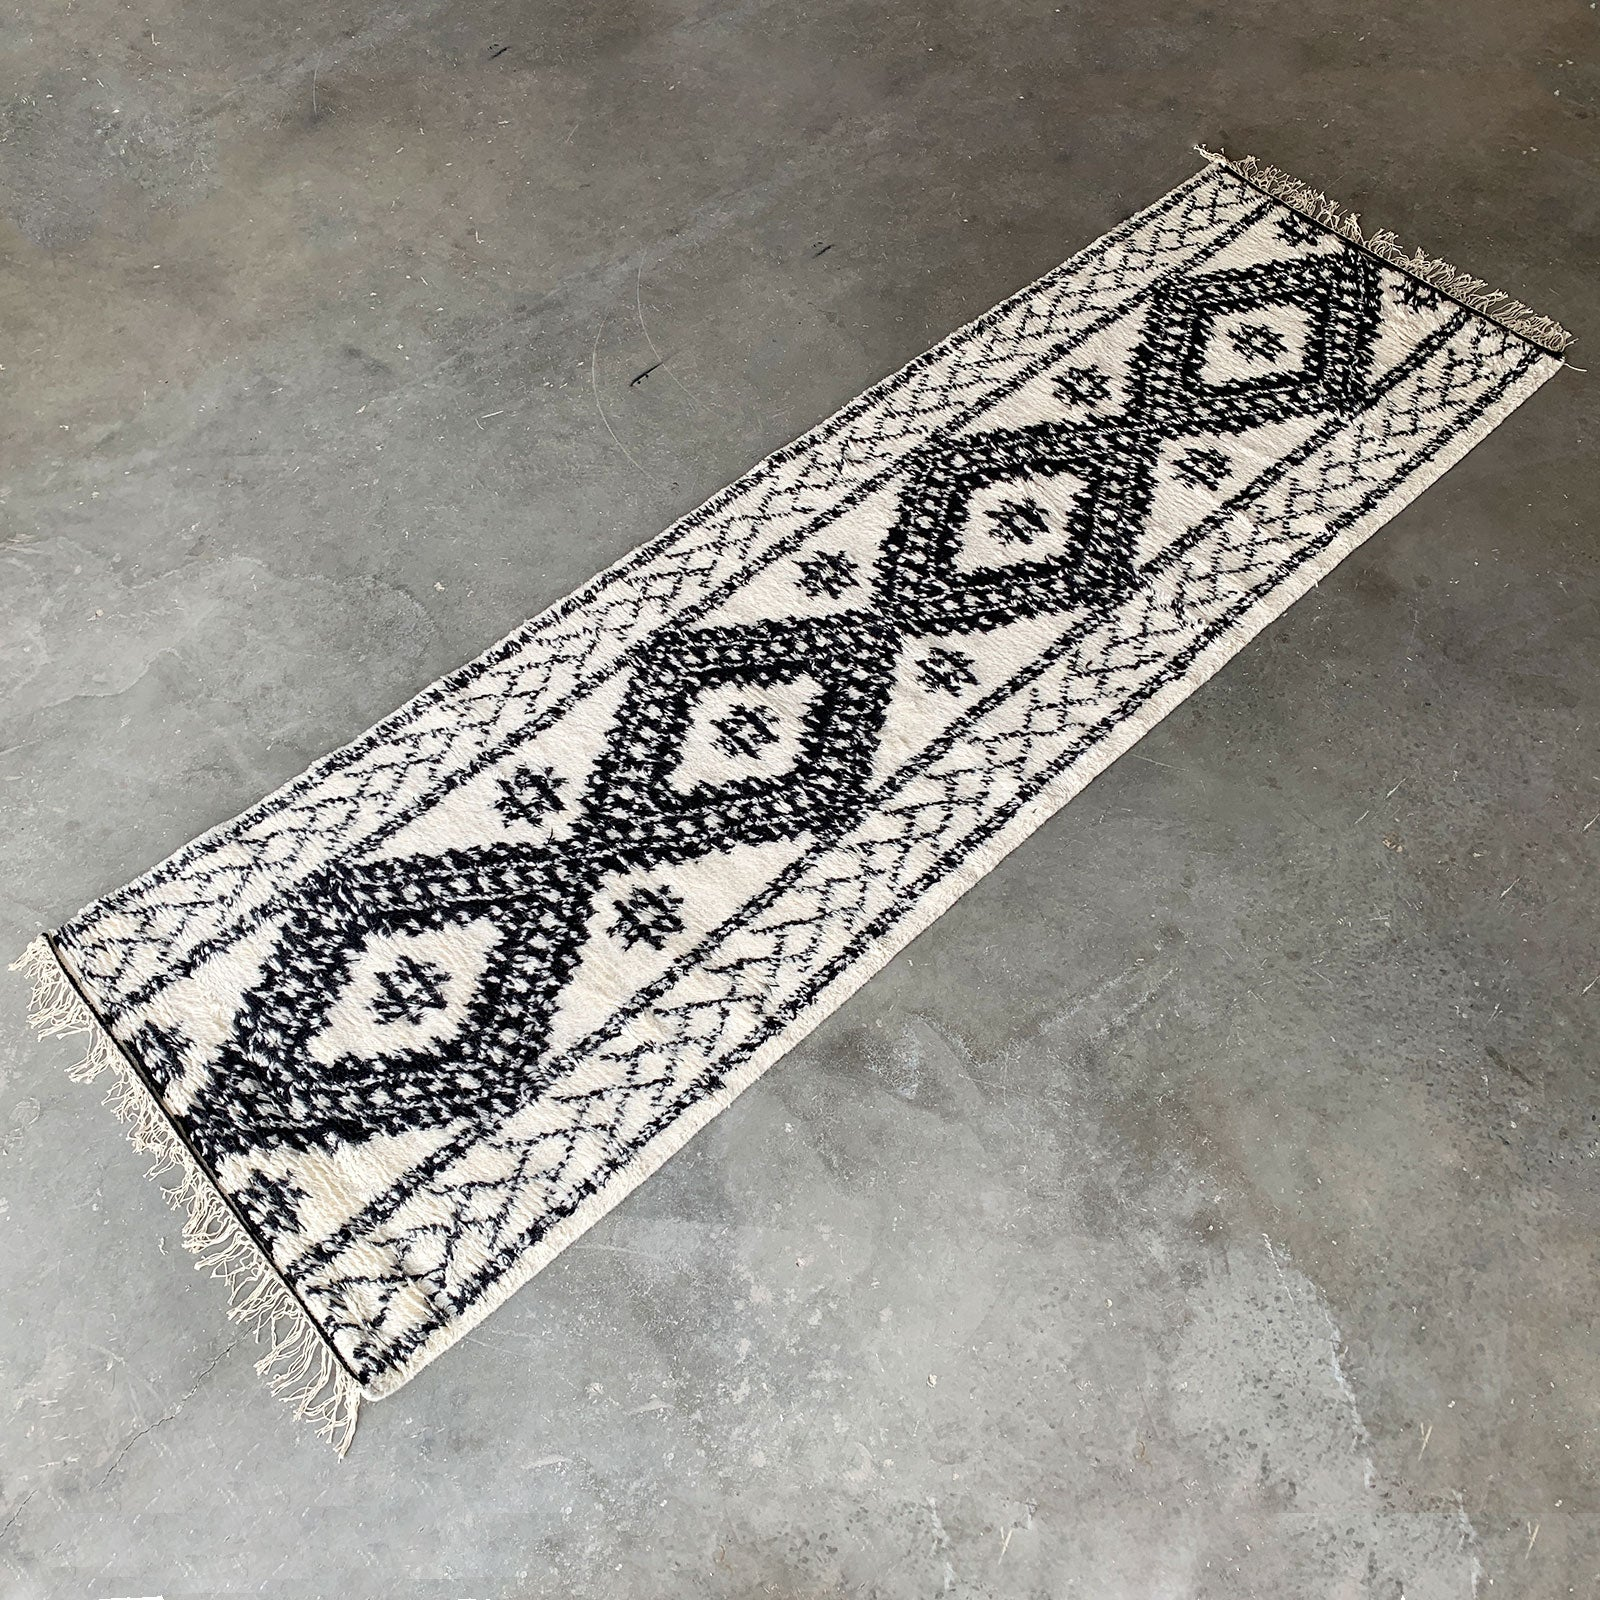 300X90 Moroccan Style  handmade  Rug JH-2709-Long -  300 × 90 على الطراز المغربي صناعة يدوية - Shop Online Furniture and Home Decor Store in Dubai, UAE at ebarza